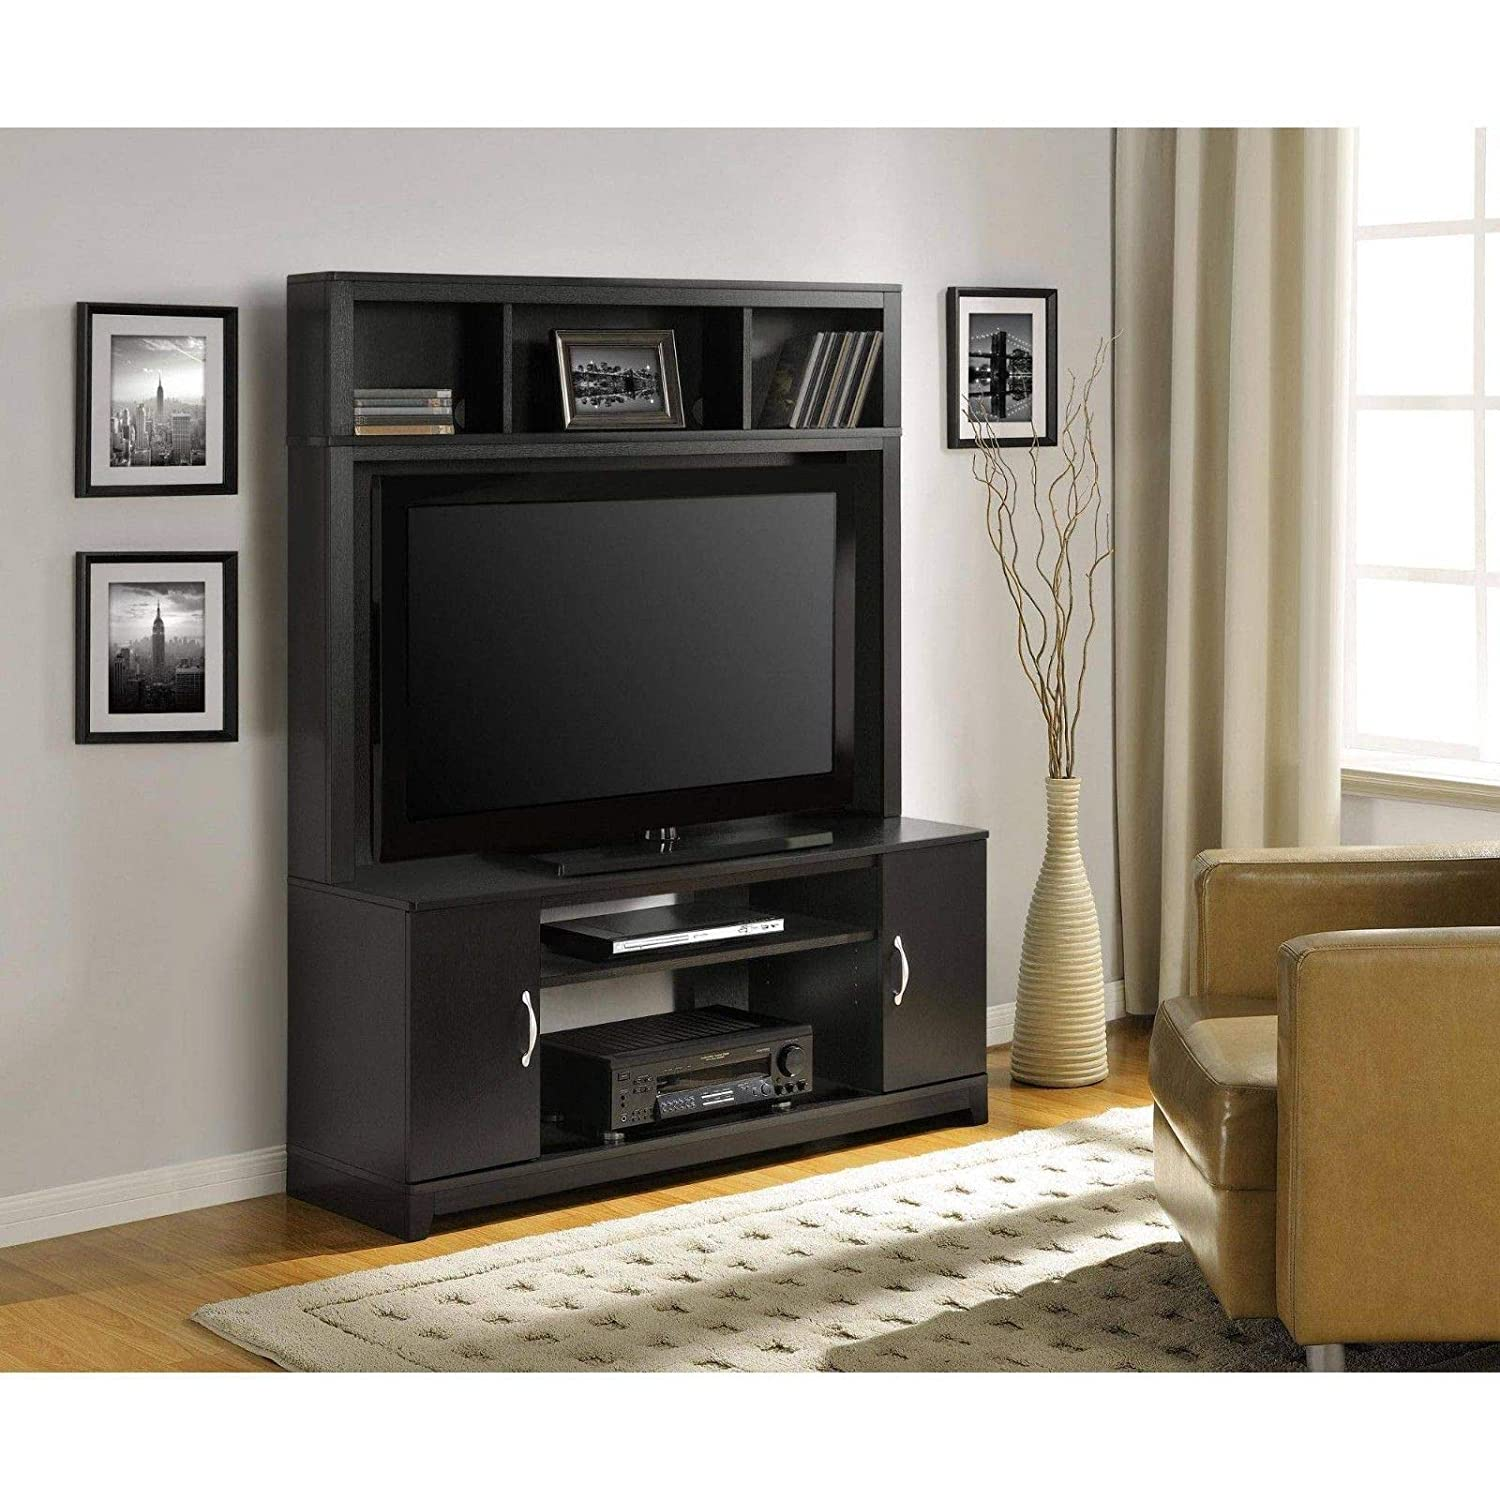 Amazon.com: Wood Classic TV Stand Home Entertainment Center ...